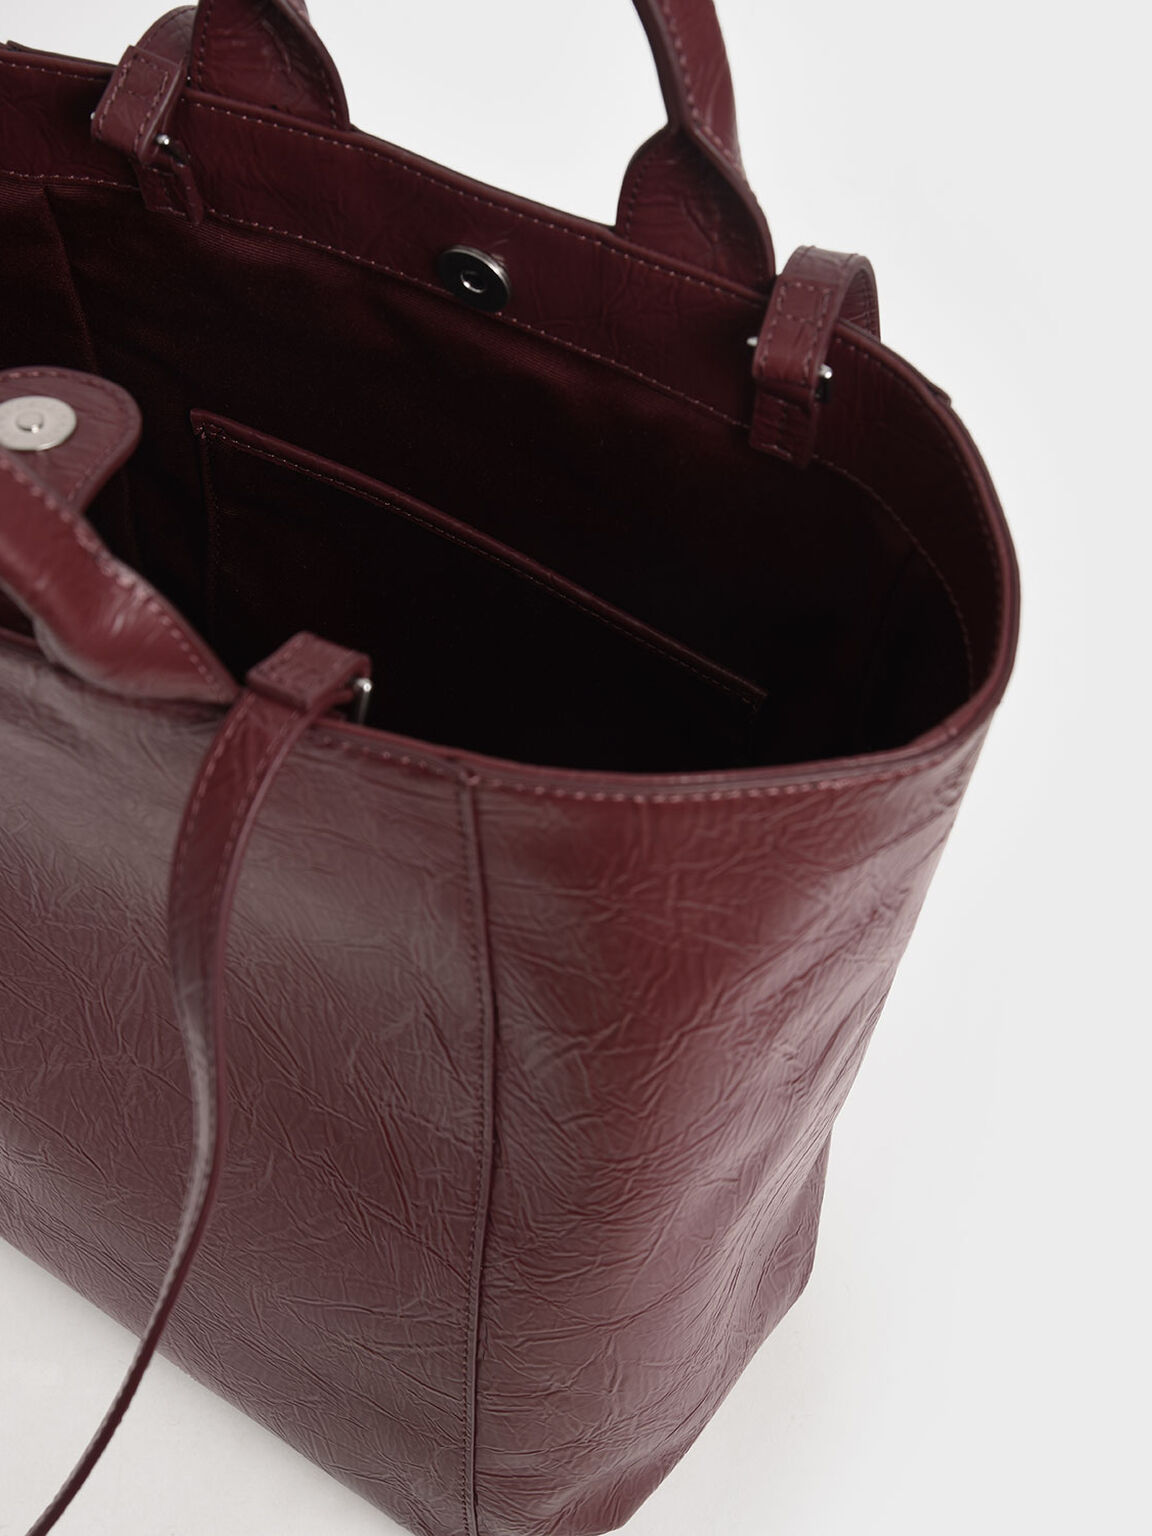 Wrinkled-Effect Double Top Handle Tote, Burgundy, hi-res